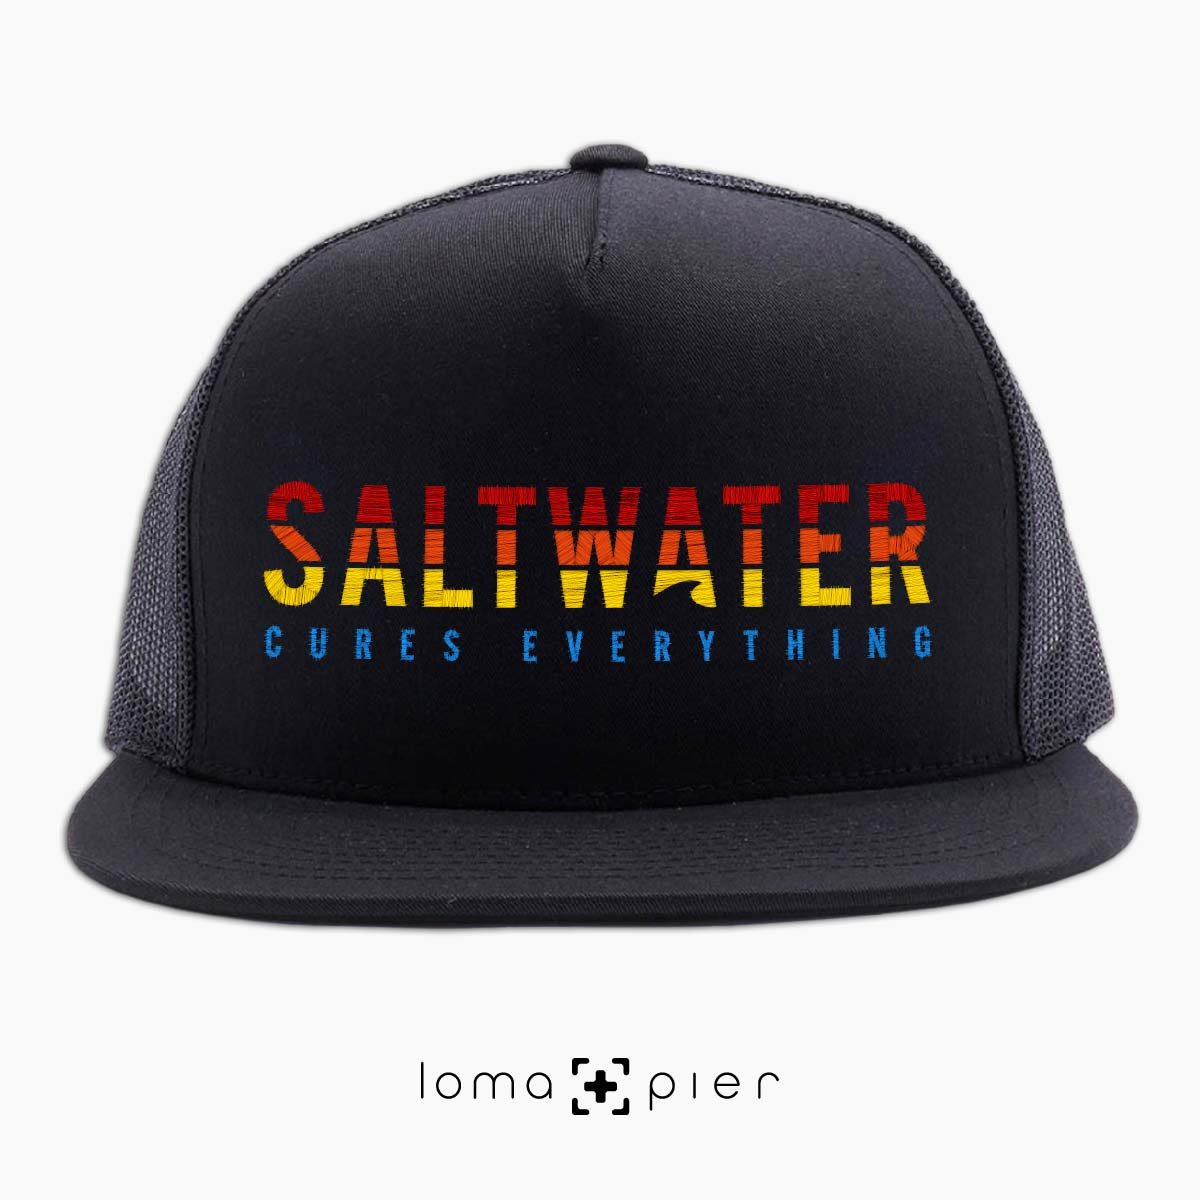 SALTWATER CURES EVERYTHING beach netback hat in black by loma+pier hat store